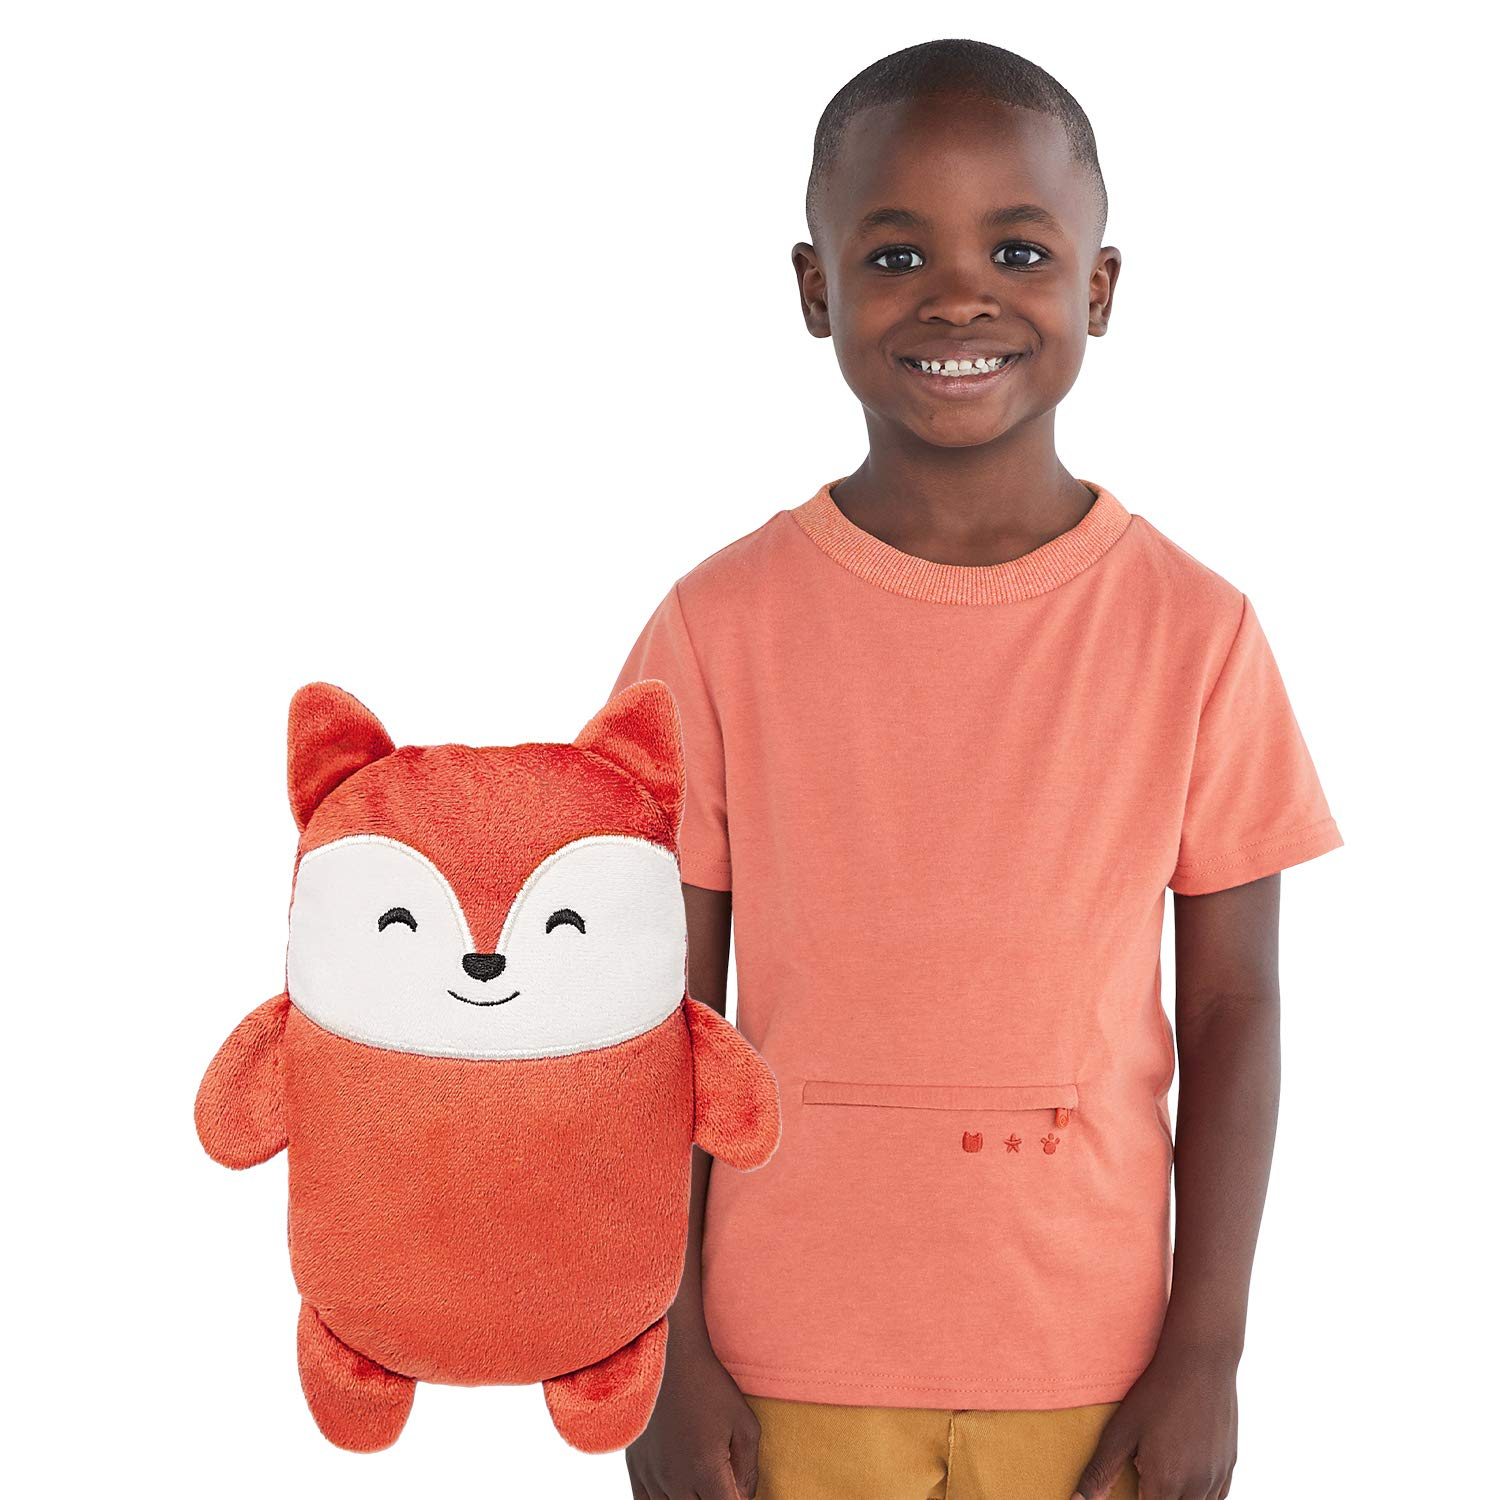 Cubcoats Flynn The Fox 2-in-1 Transforming Tee T-Shirt and Soft Plushie